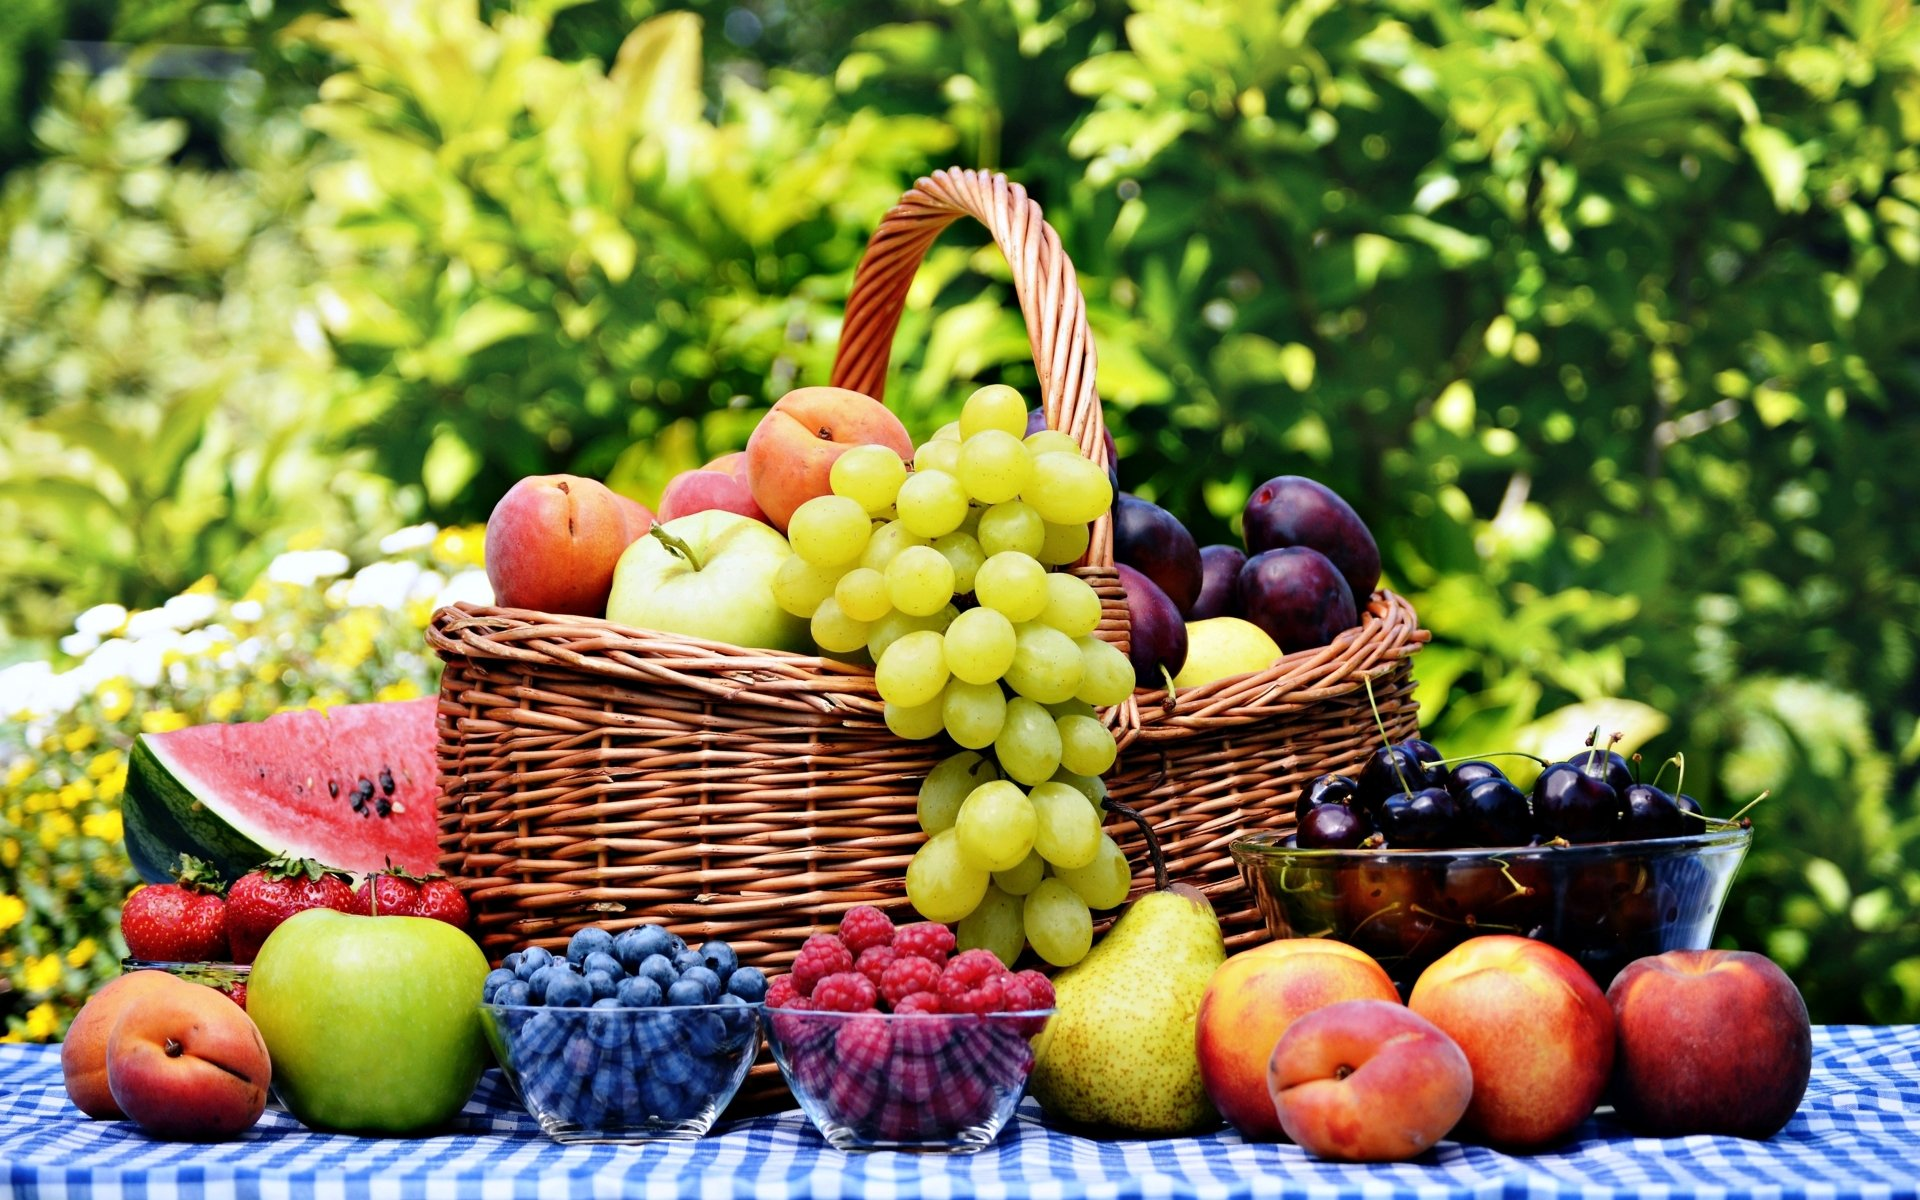 Food - Fruit  Food Strawberry Watermelon Grapes Pear Apricot Peach Apple Wallpaper